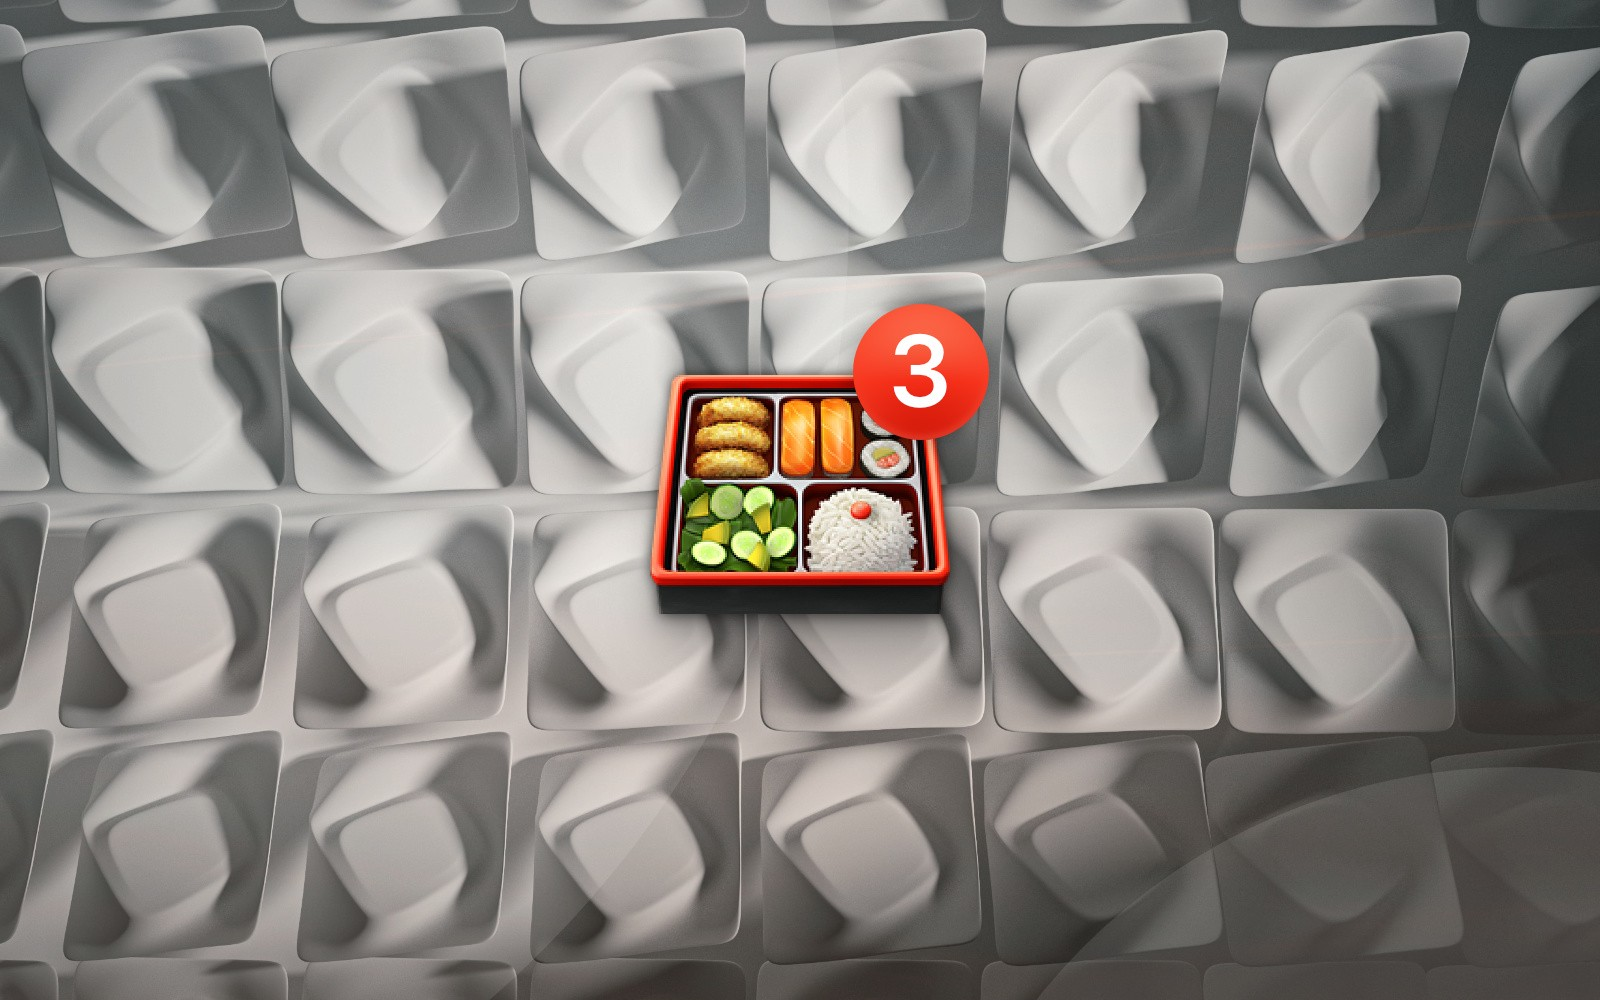 Bento box emoji with number 3 badge on abstract geometric background